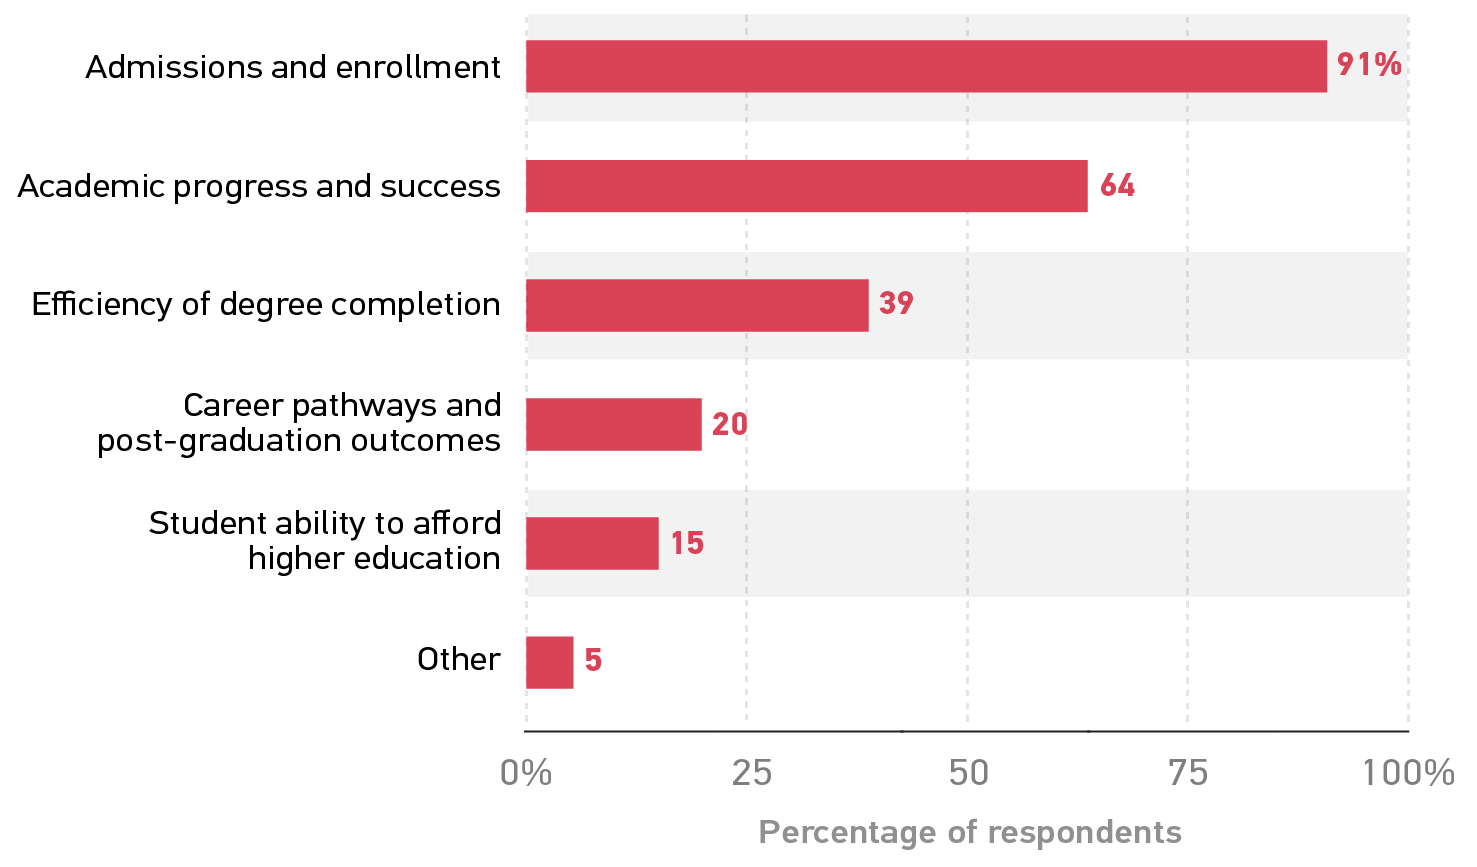 Bar graph showing percentage of respondents reporting CRM use in various stages of the student lifecycle. Admissions and enrollment 91%. Academic progress and success 64. Efficiency of degree completion 39. Career pathways and post-graduation outcomes 20. Student ability to afford higher education 15. Other 5.